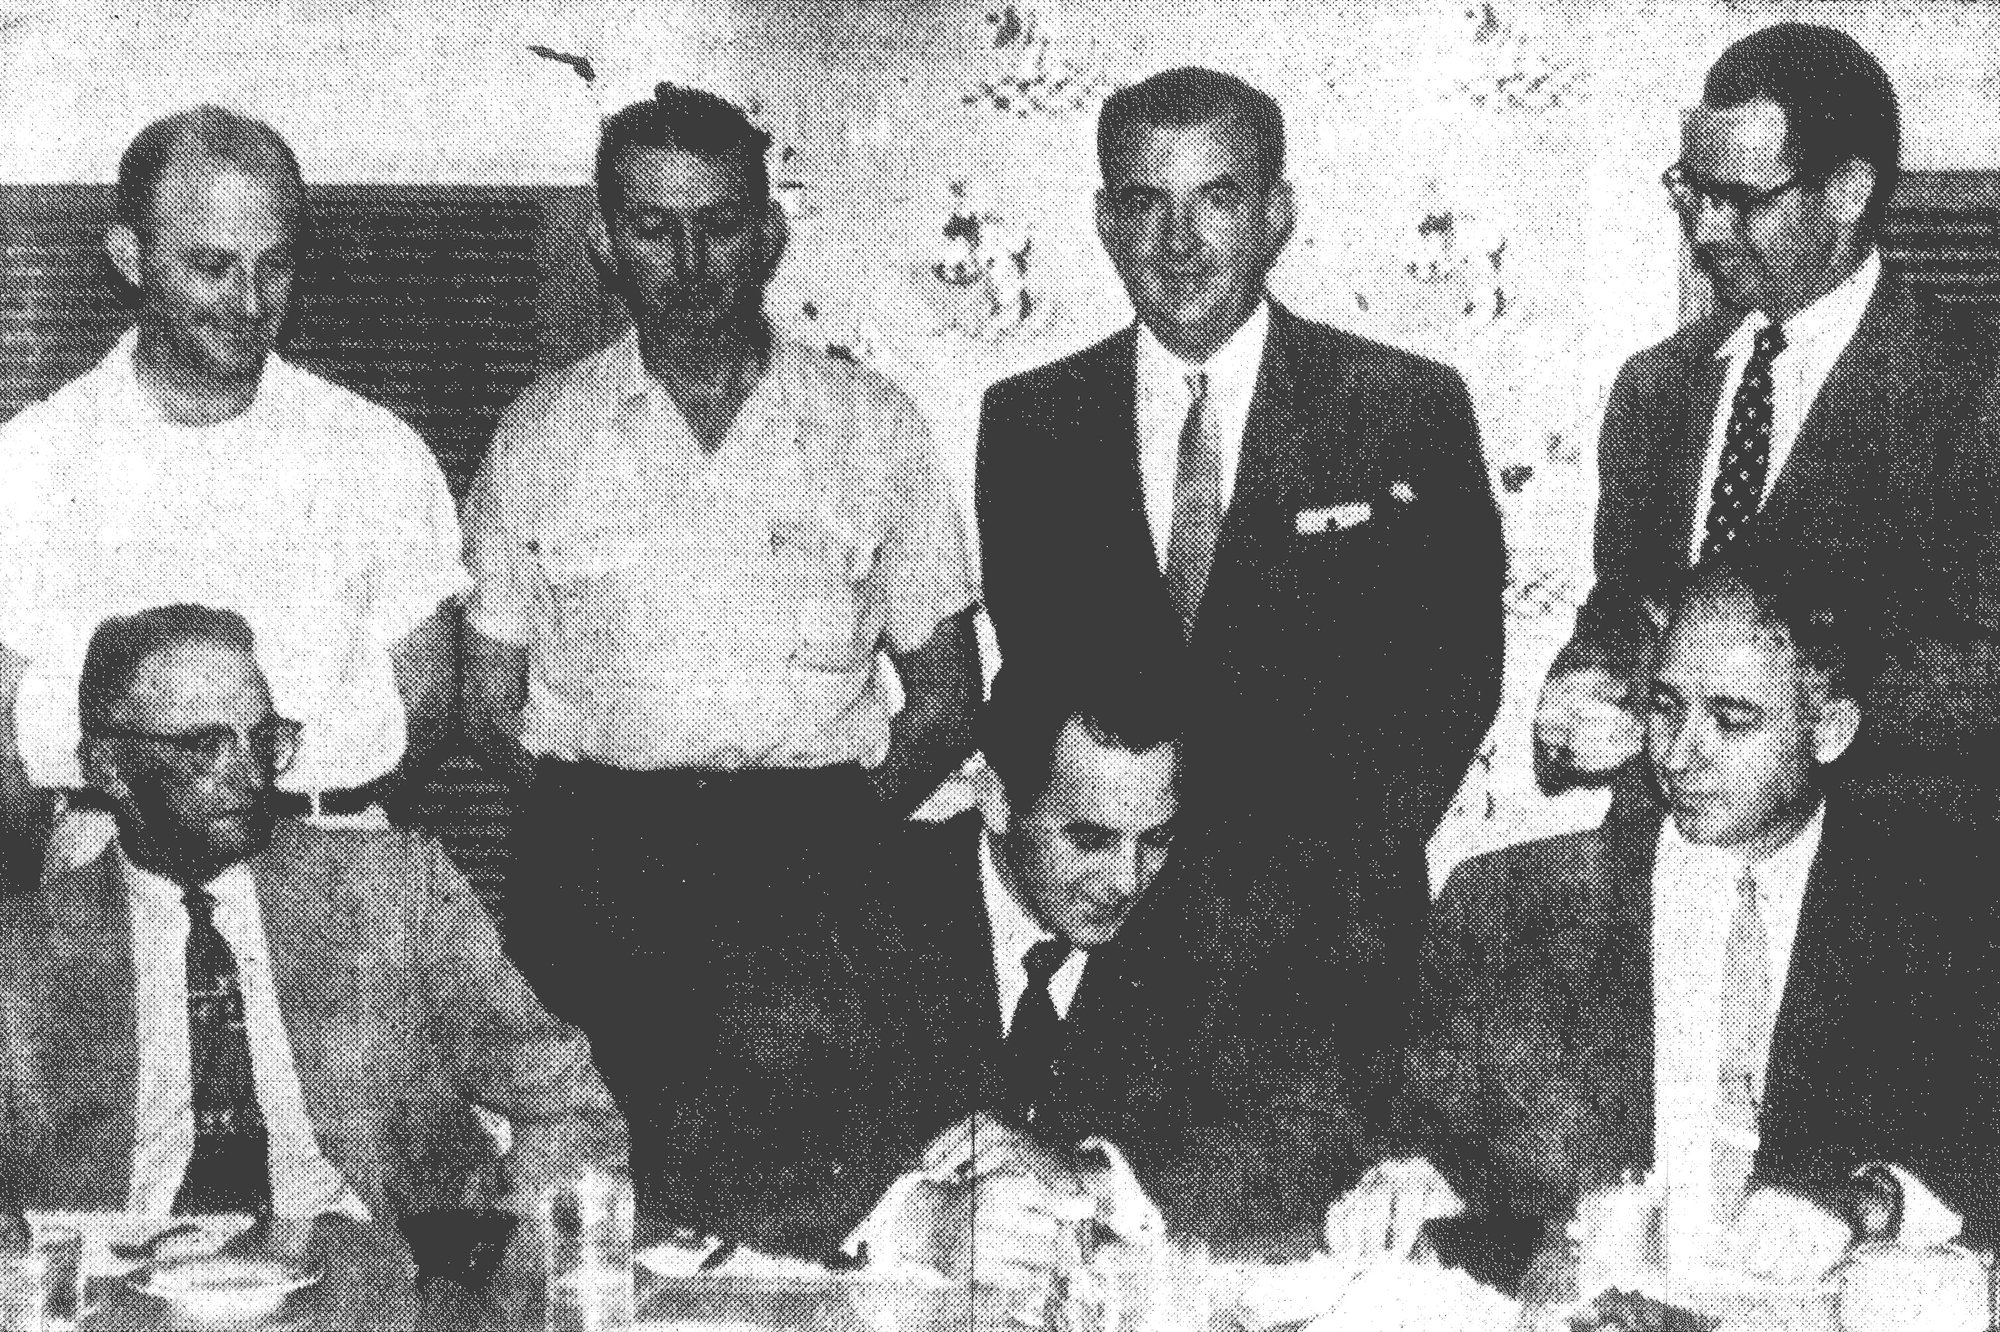 Sumter Chamber of Commerce, city and industrial officials clear up final details in negotiations Aug. 11, 1955, for the location of Model Dye Southern Inc. in Sumter. Seated from left are Mayor Pro Tem S. A. Harvin, Model Dye President Rene Petit and Chamber President C. C. Goodwin, and standing from left are W. M. Hodge, City Manager Wade S. Kolb, W. T. McCracken and Chamber Manager Worth D. Holder.